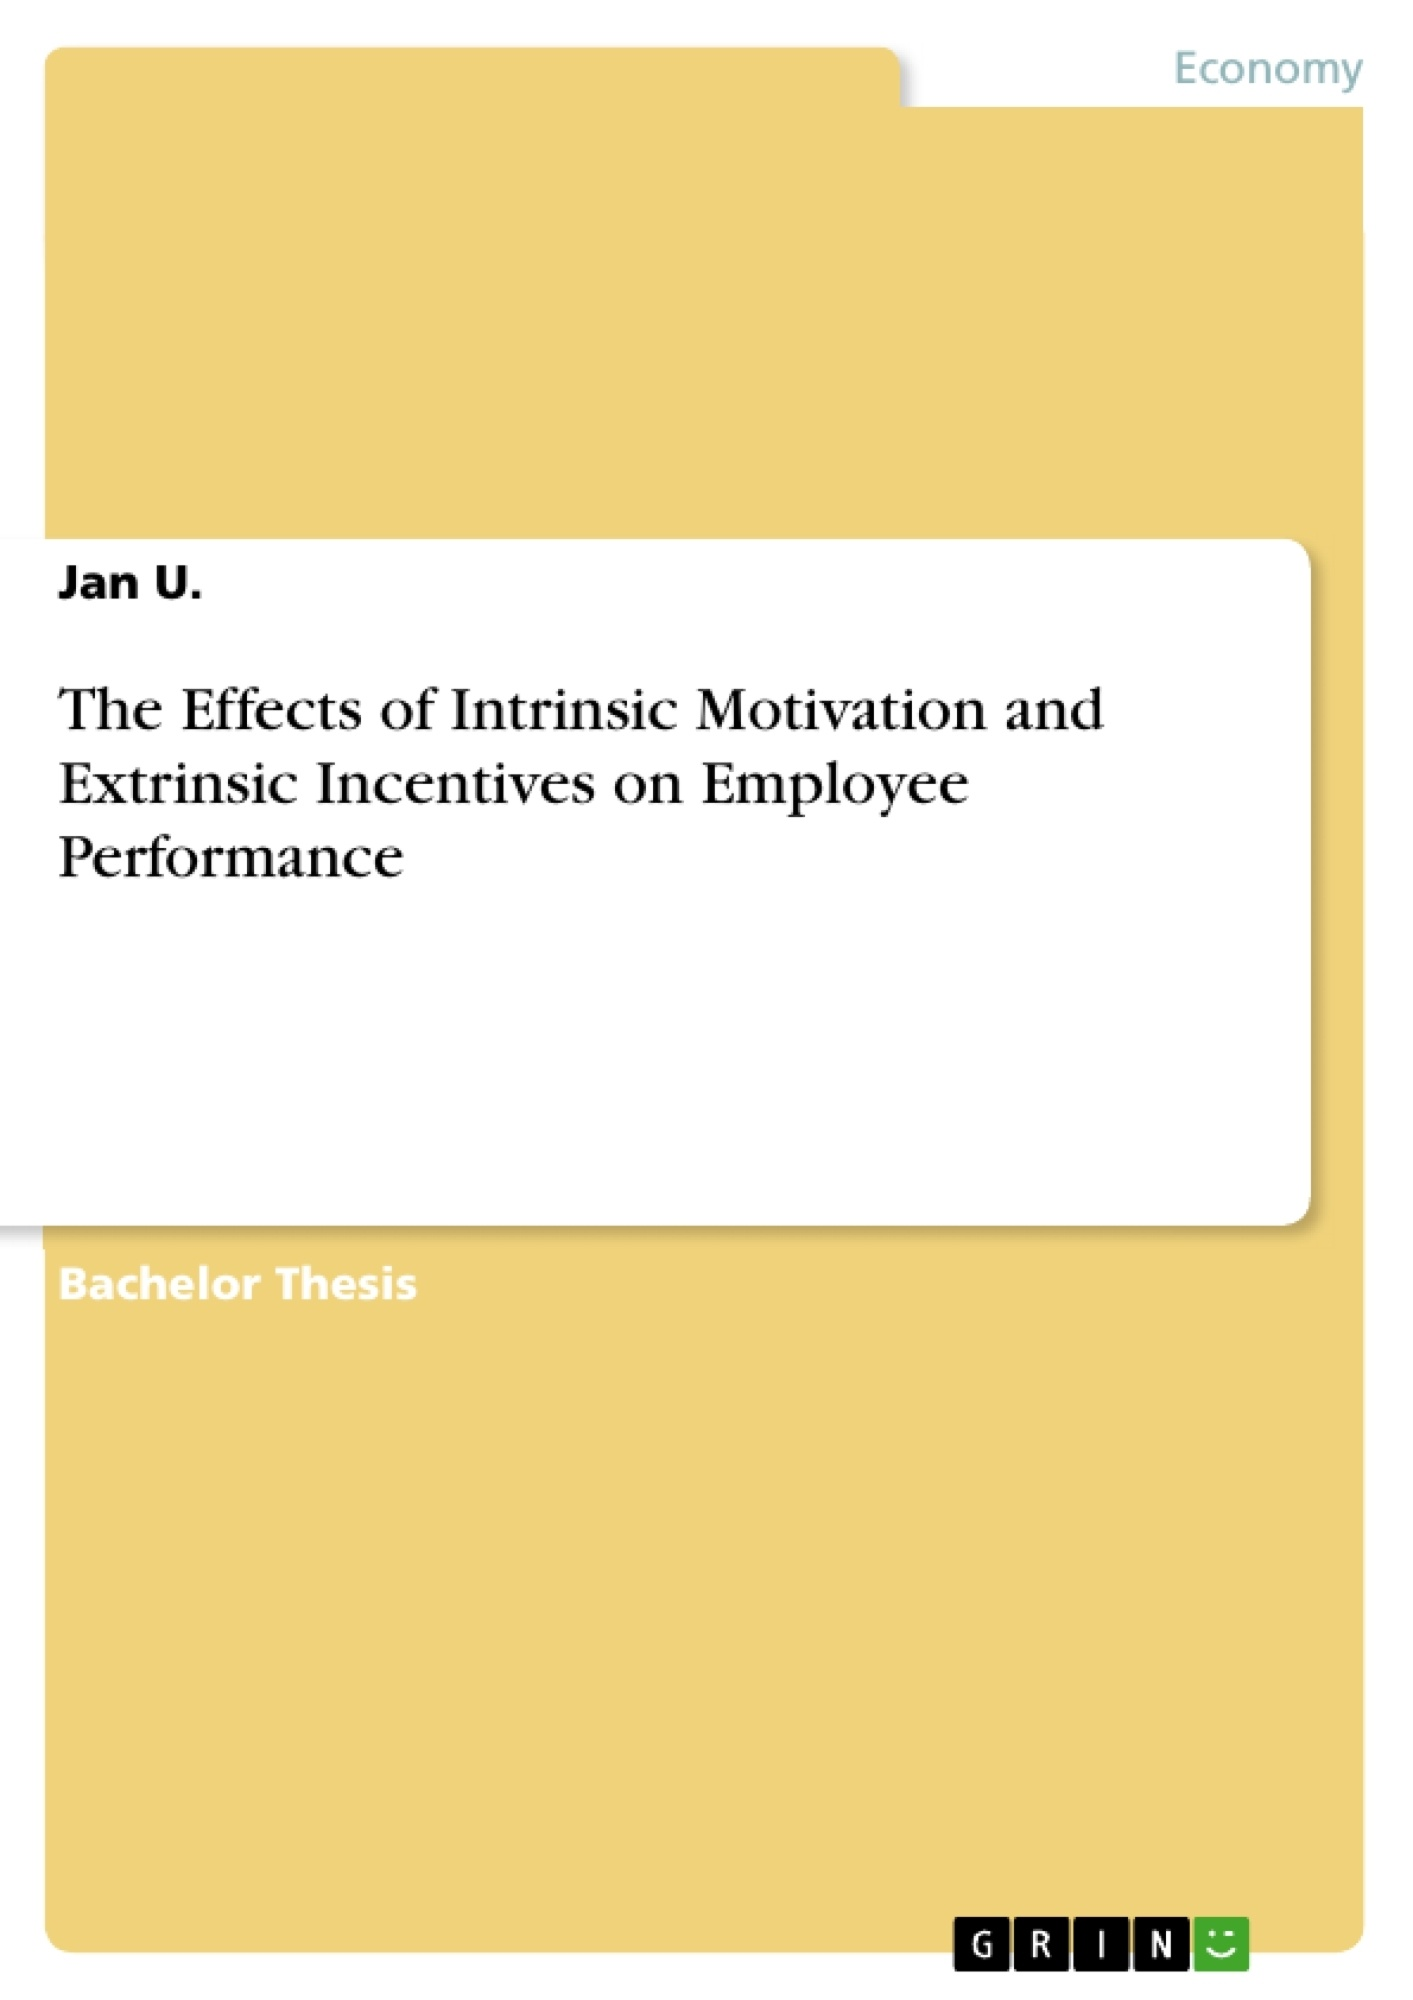 Title: The Effects of Intrinsic Motivation and Extrinsic Incentives on Employee Performance